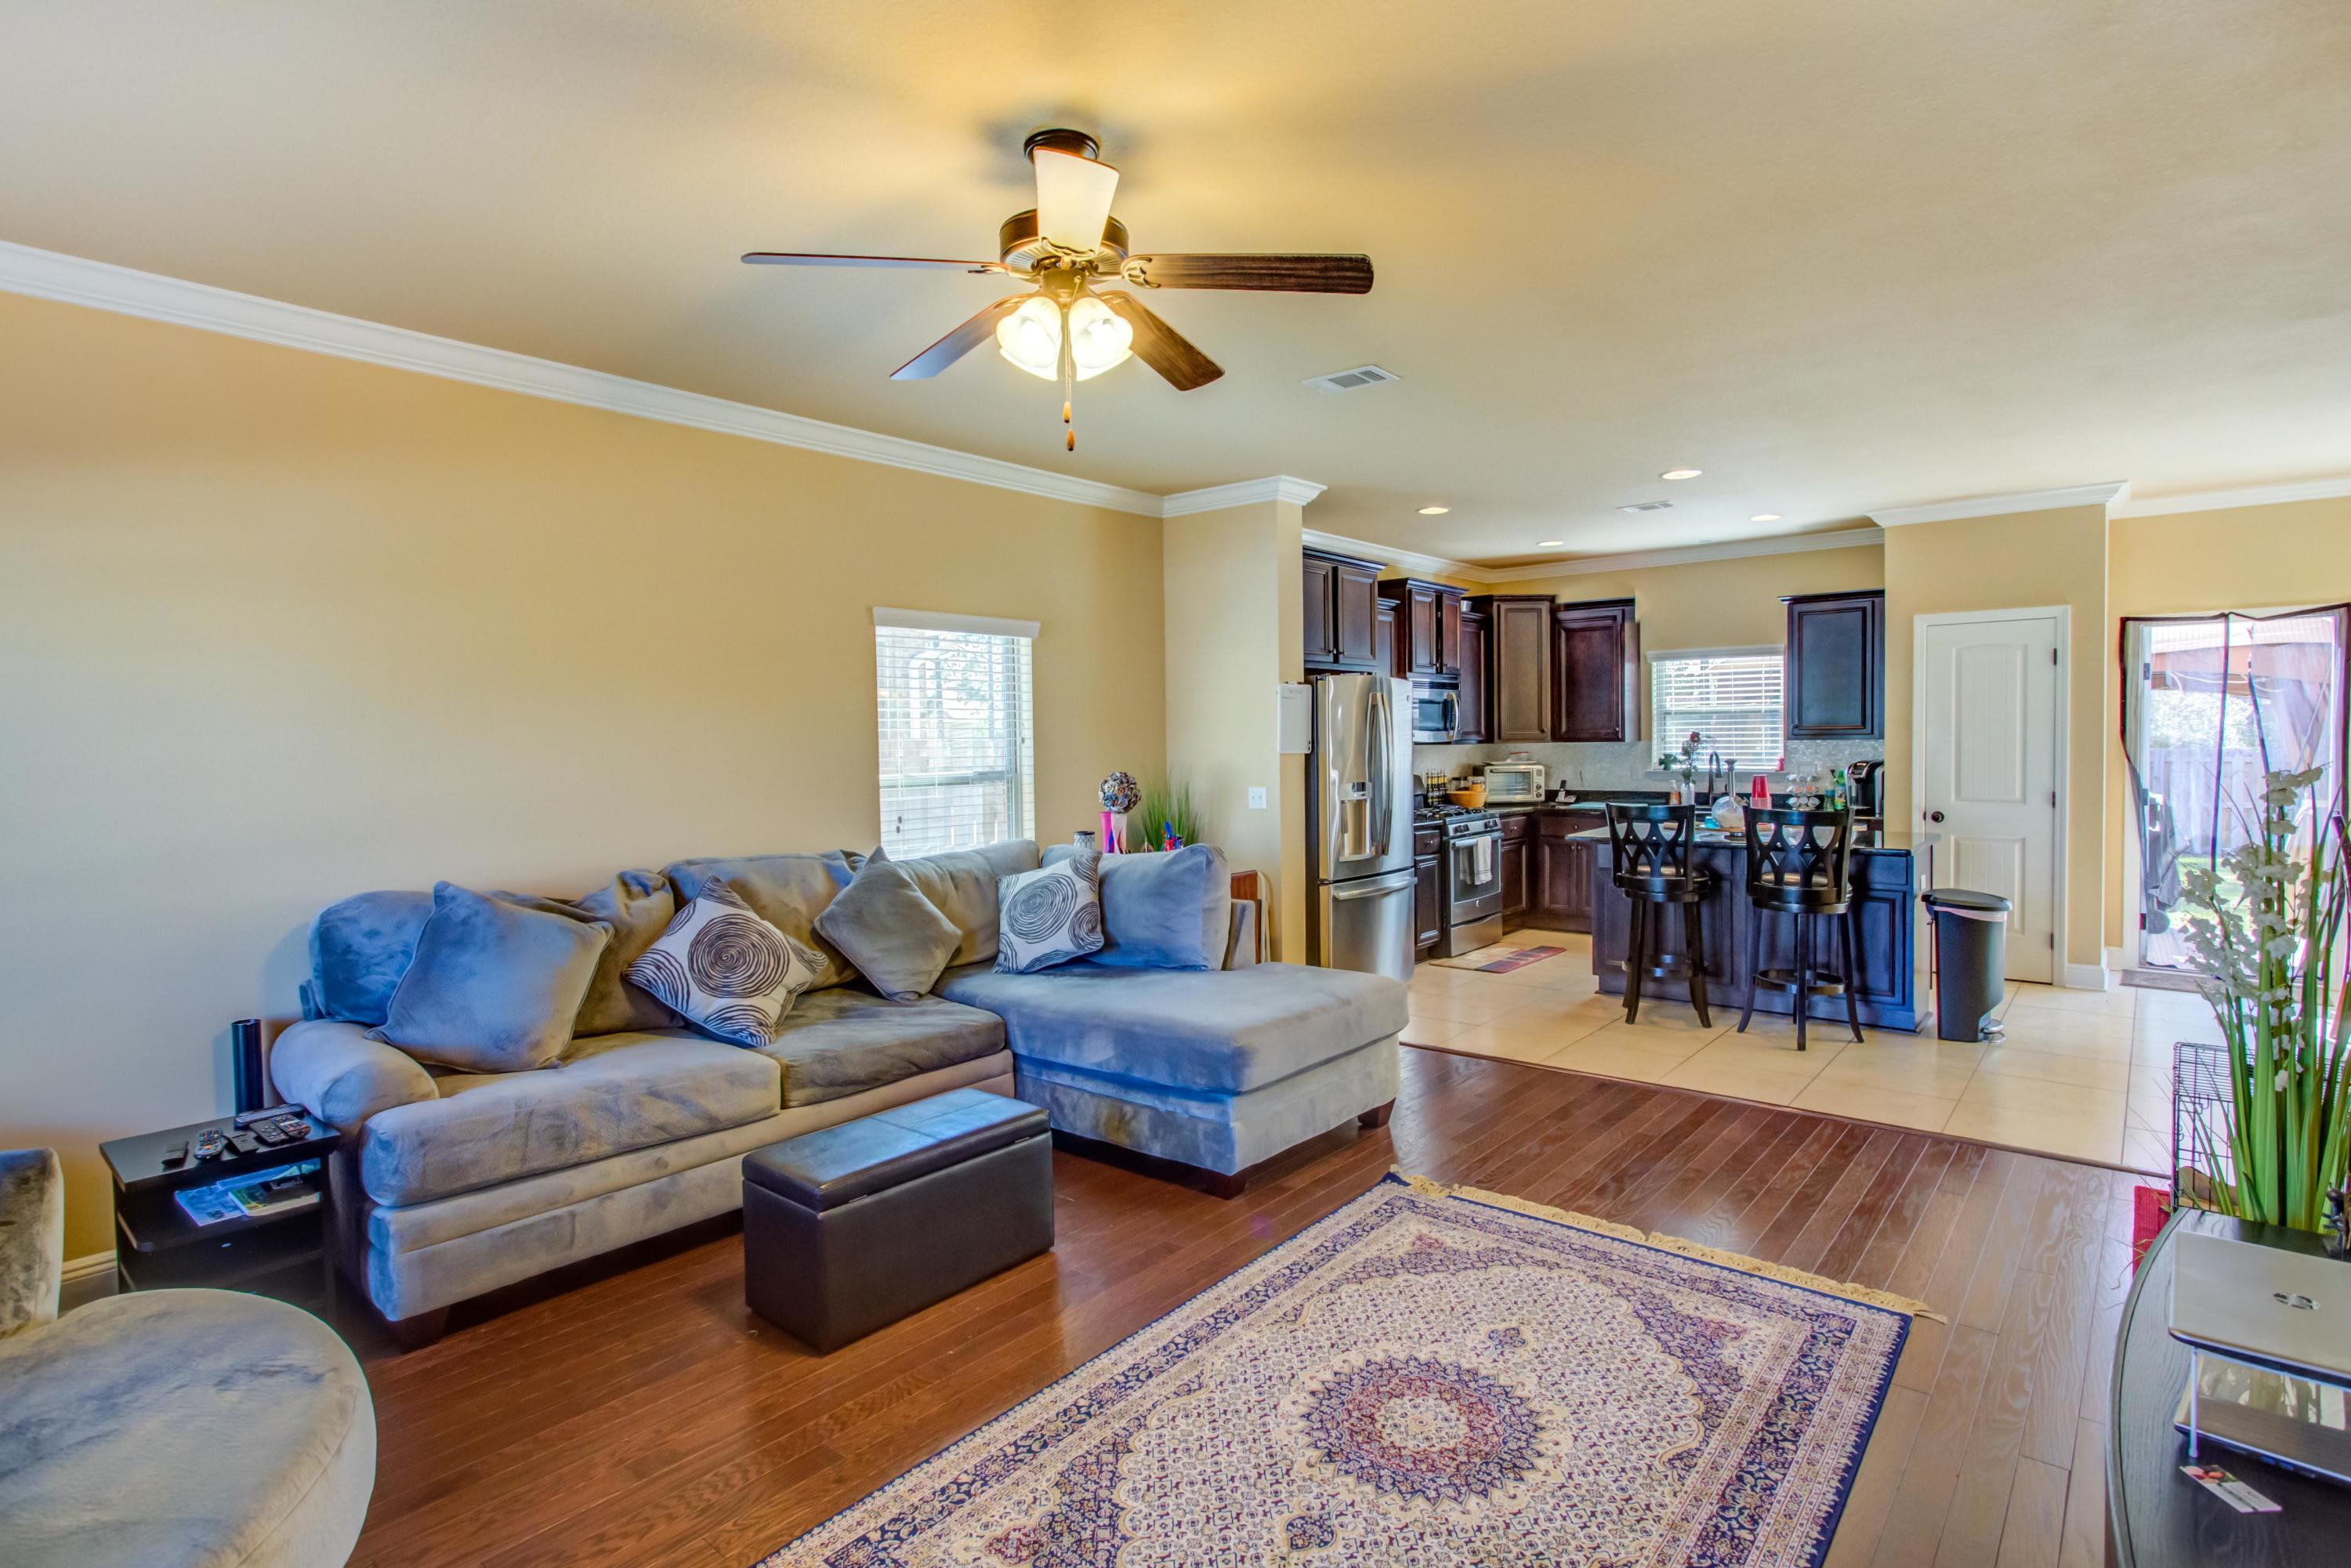 Enjoy an amazing lifestyle in your beautiful home on the Preserve in Hammock Bay!  This one owner home, built in 2014, features an open concept floor plan & bonus room. The large back yard backs to lush green preserve and has been totally enclosed with a 6 foot privacy fence.  You will love the wood floors in the family room with ample space for entertaining your family and friends. The chef in the family will appreciate the kitchen w/ granite countertops, island and stainless appliances!  The large master bedroom is downstairs and looks out onto the yard and trees.  In the master bath are double vanities and a spacious tiled shower.  The master closet is generously sized and easy to keep organized.  Upstairs are two bedrooms connected with a jack and jill bath with double sinks.  The bon also upstairs, is very large and lends itself to so many possibilities.  With ample curb appeal and located in coveted Passages, this house may be your perfect home!  Hammock Bay is a 3,000 acre neighborhood with entrances to the North, East and West.  The beautiful grounds and amenities are maintained by an HOA.  The monthly HOA fee includes access to all pools, fitness center, theatre, owners' club and lanai, tennis, basketball, pickle ball, playground, doggie park, BBQ pavilion, and outdoor theatre for concerts and performances.  The adjacent 60 acre Regional Sports Complex provides the perfect venue for the annual antique car show, seafood festival, and rodeo as well as little league games and soccer practices.  Accessible with your amenities key fob is the HB Bay Club and Fishing Pier just minutes from the west entrance.  For the boaters, two boat ramps are within five minutes of the east entrance giving you access to the beautiful Choctawhatchee Bay and the Gulf of Mexico!  Private RV and boat storage area is available on-site in Hammock Bay for an extra fee.  There is no other neighborhood like Hammock Bay in the tri-county area!  Buyer to verify all square footage and infor